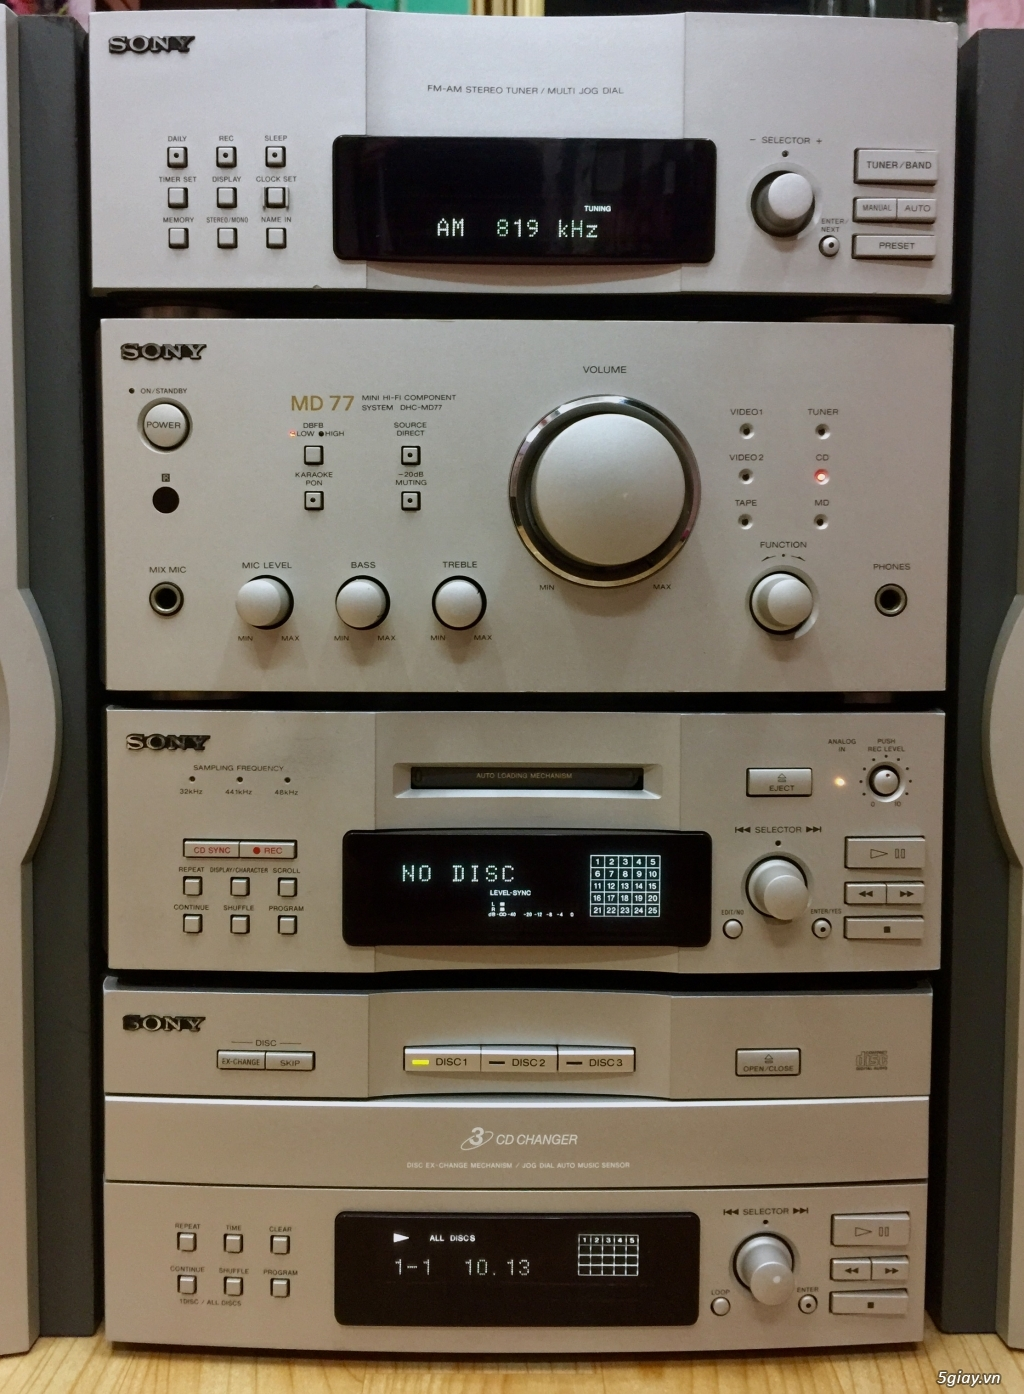 Dàn SONY MD77 made in JaPan 4 thớt rời cao cấp - 2